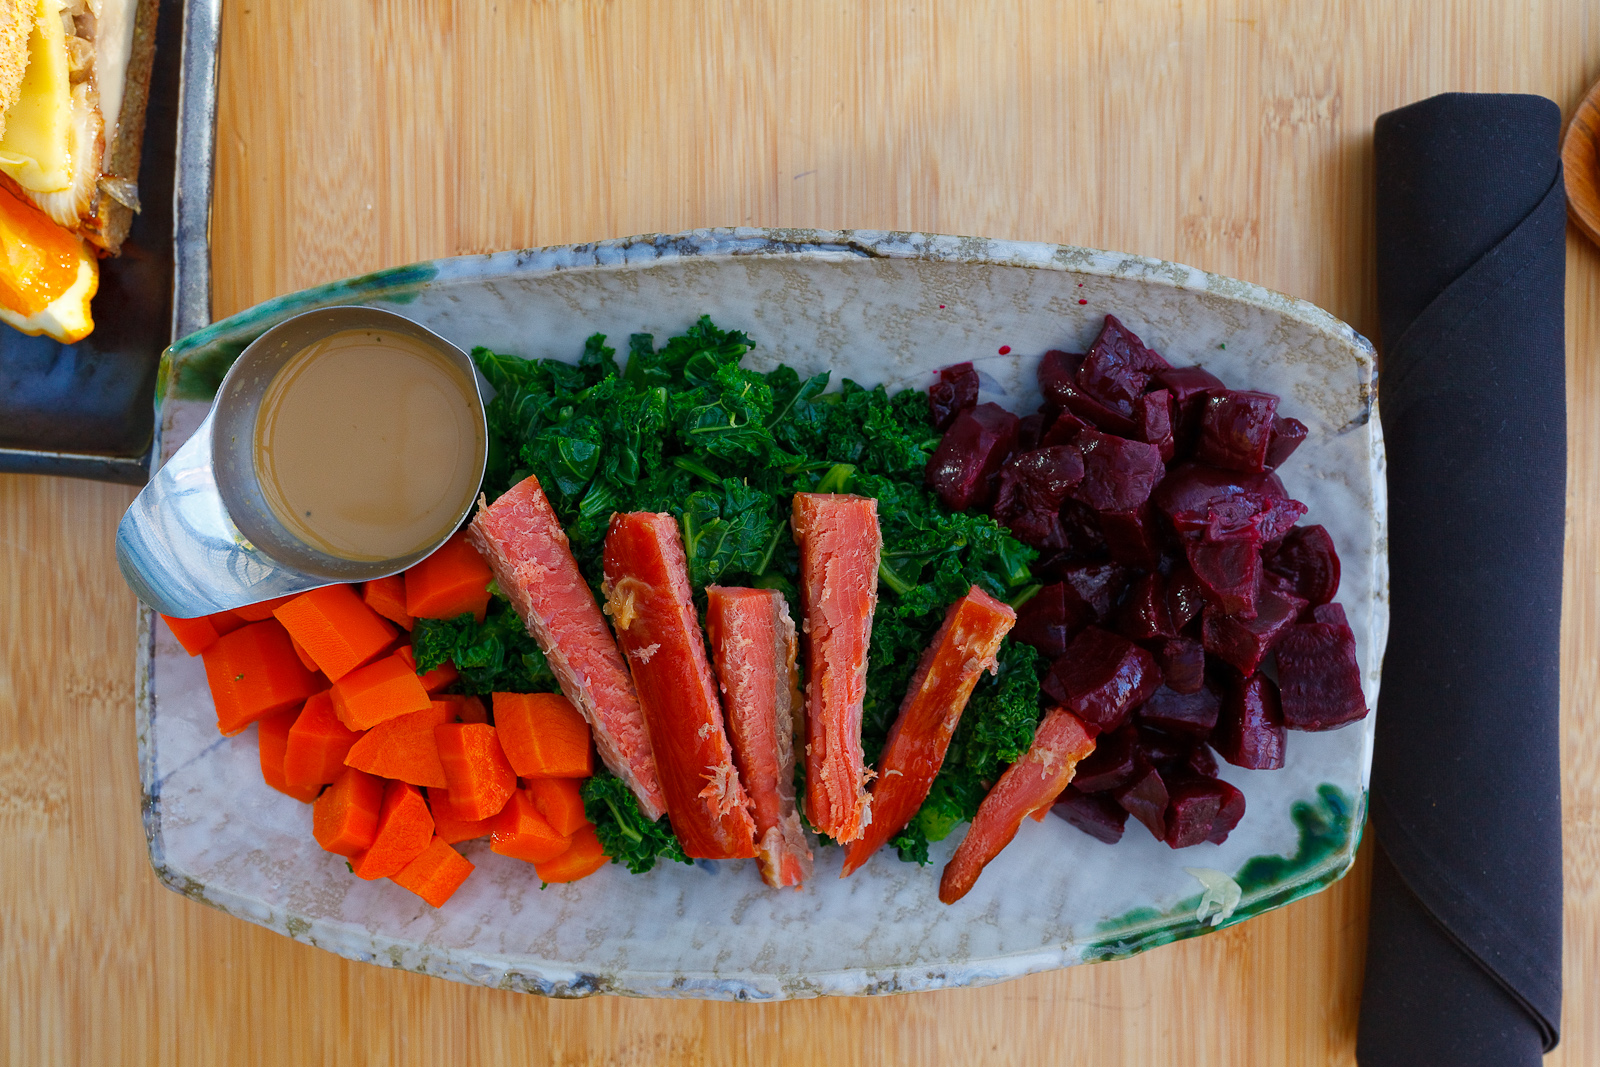 Paleolithic tea service - kale and carrot salad drizzled with tangy sesame dressing, steamed beets, wild salmon ($19)